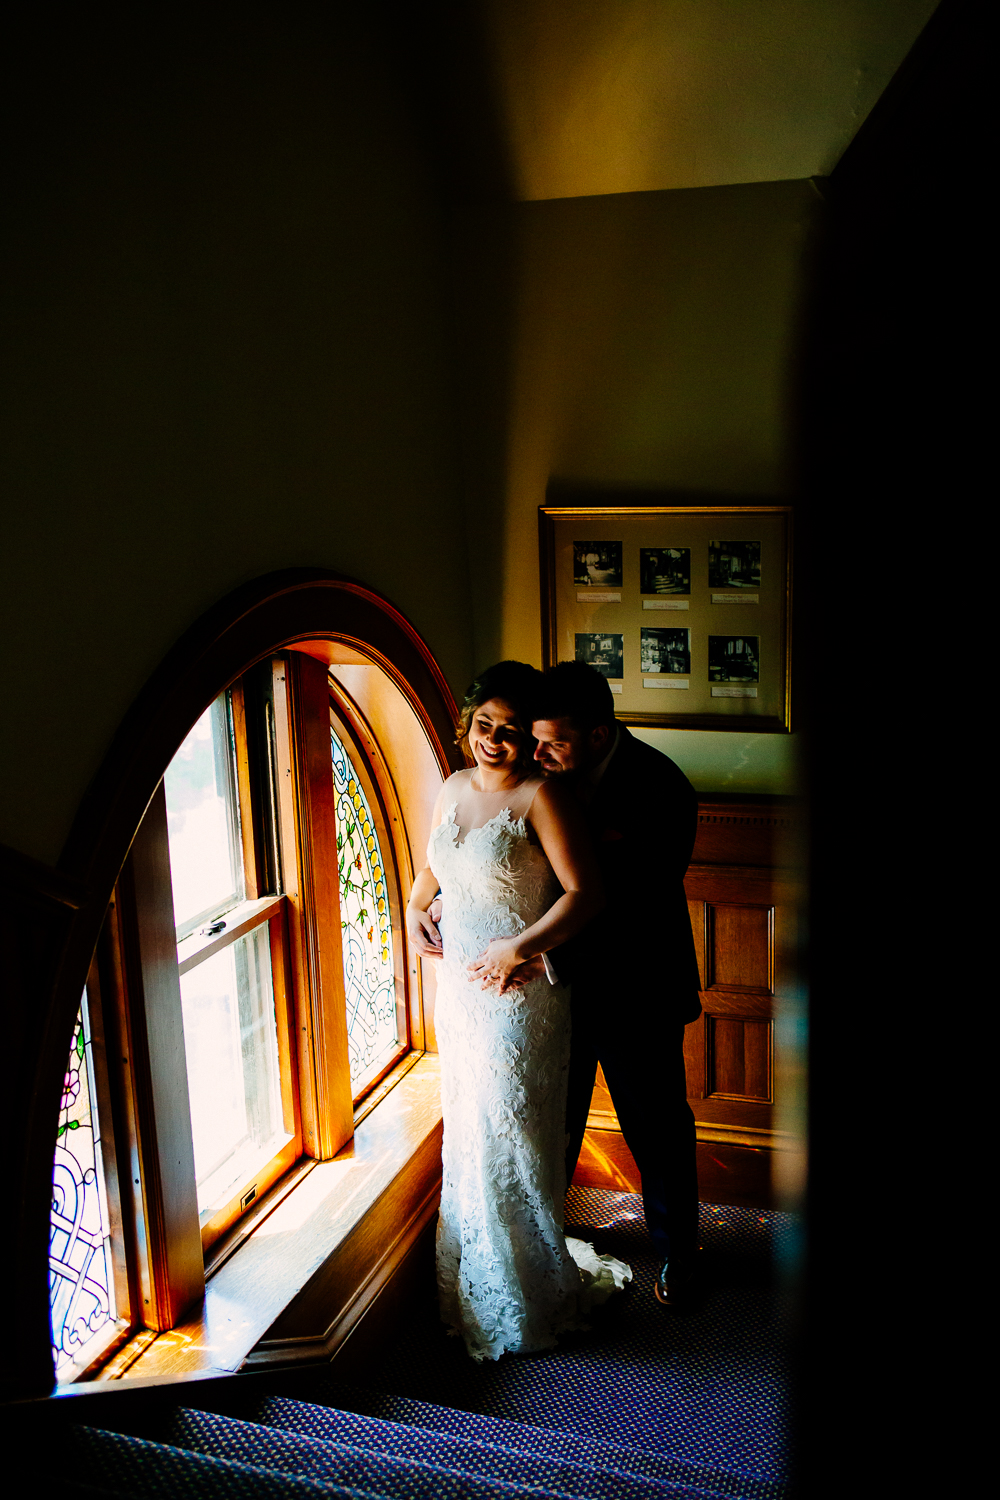 Bride and groom smile near a stained glass window.